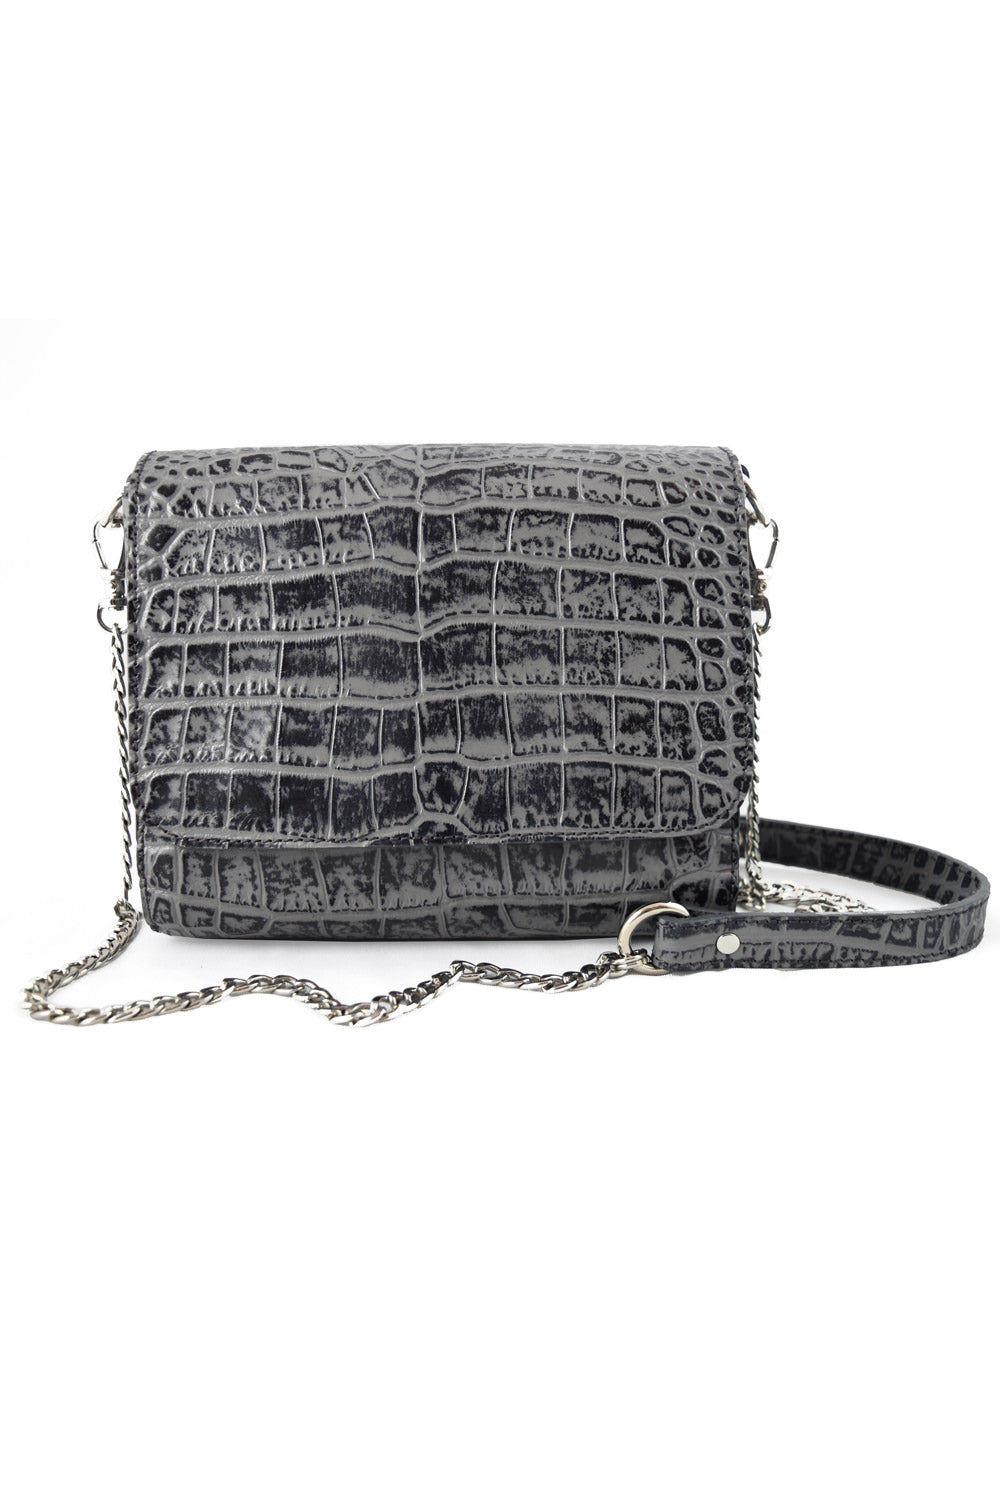 'Gema' Small Shoulder Bag in Grey, Croc-Emboss Leather | Mel Boteri | Front View